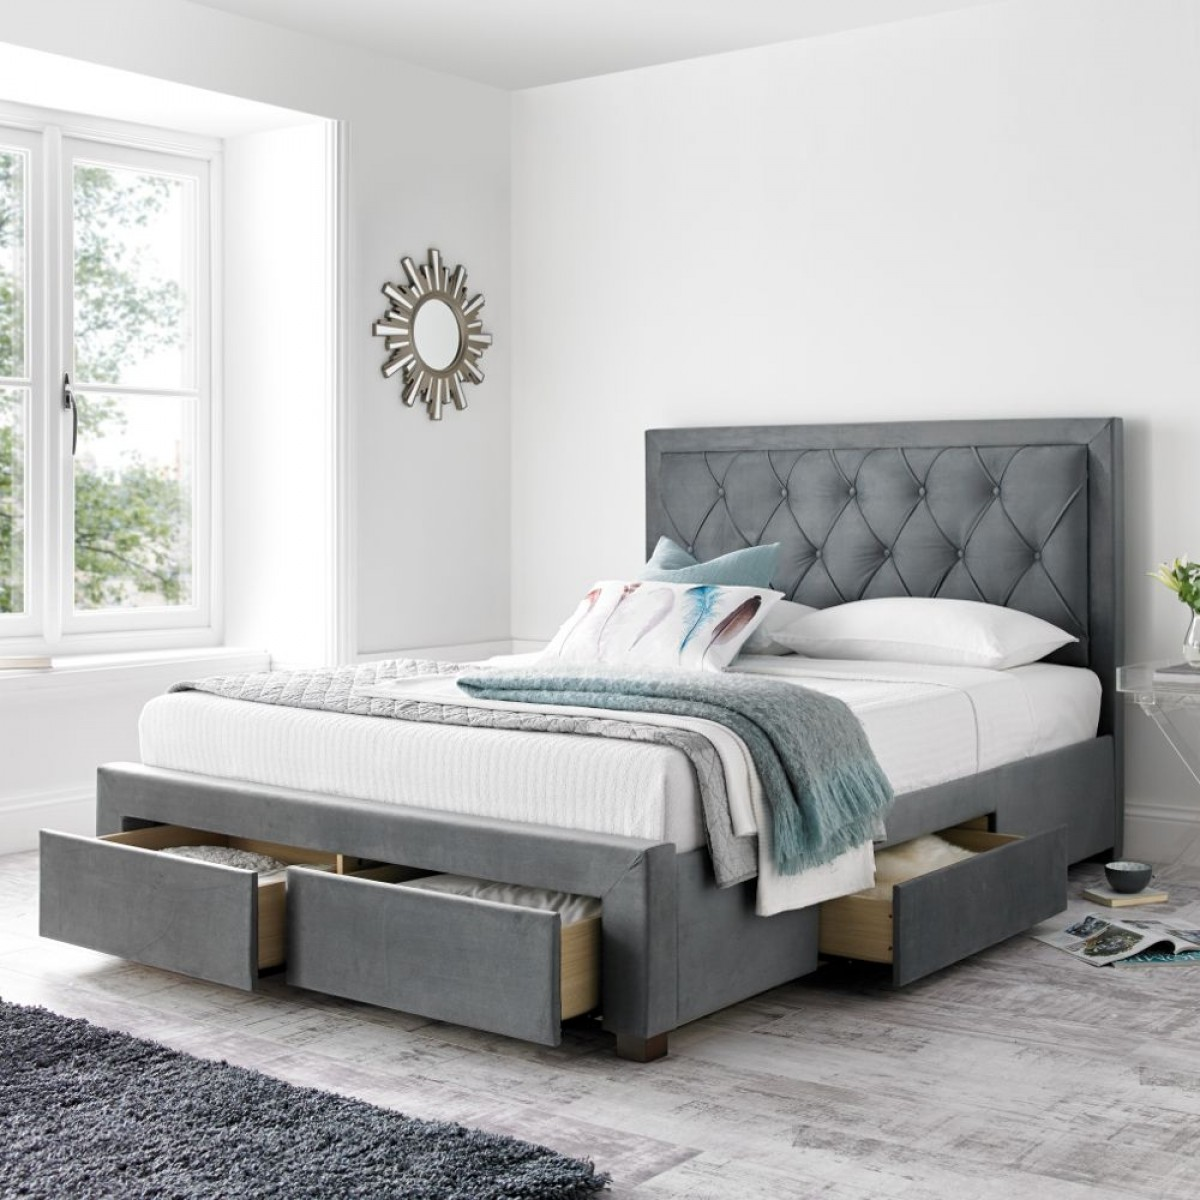 woodbury grey fabric 4 drawer storage bed frame 6ft. Black Bedroom Furniture Sets. Home Design Ideas